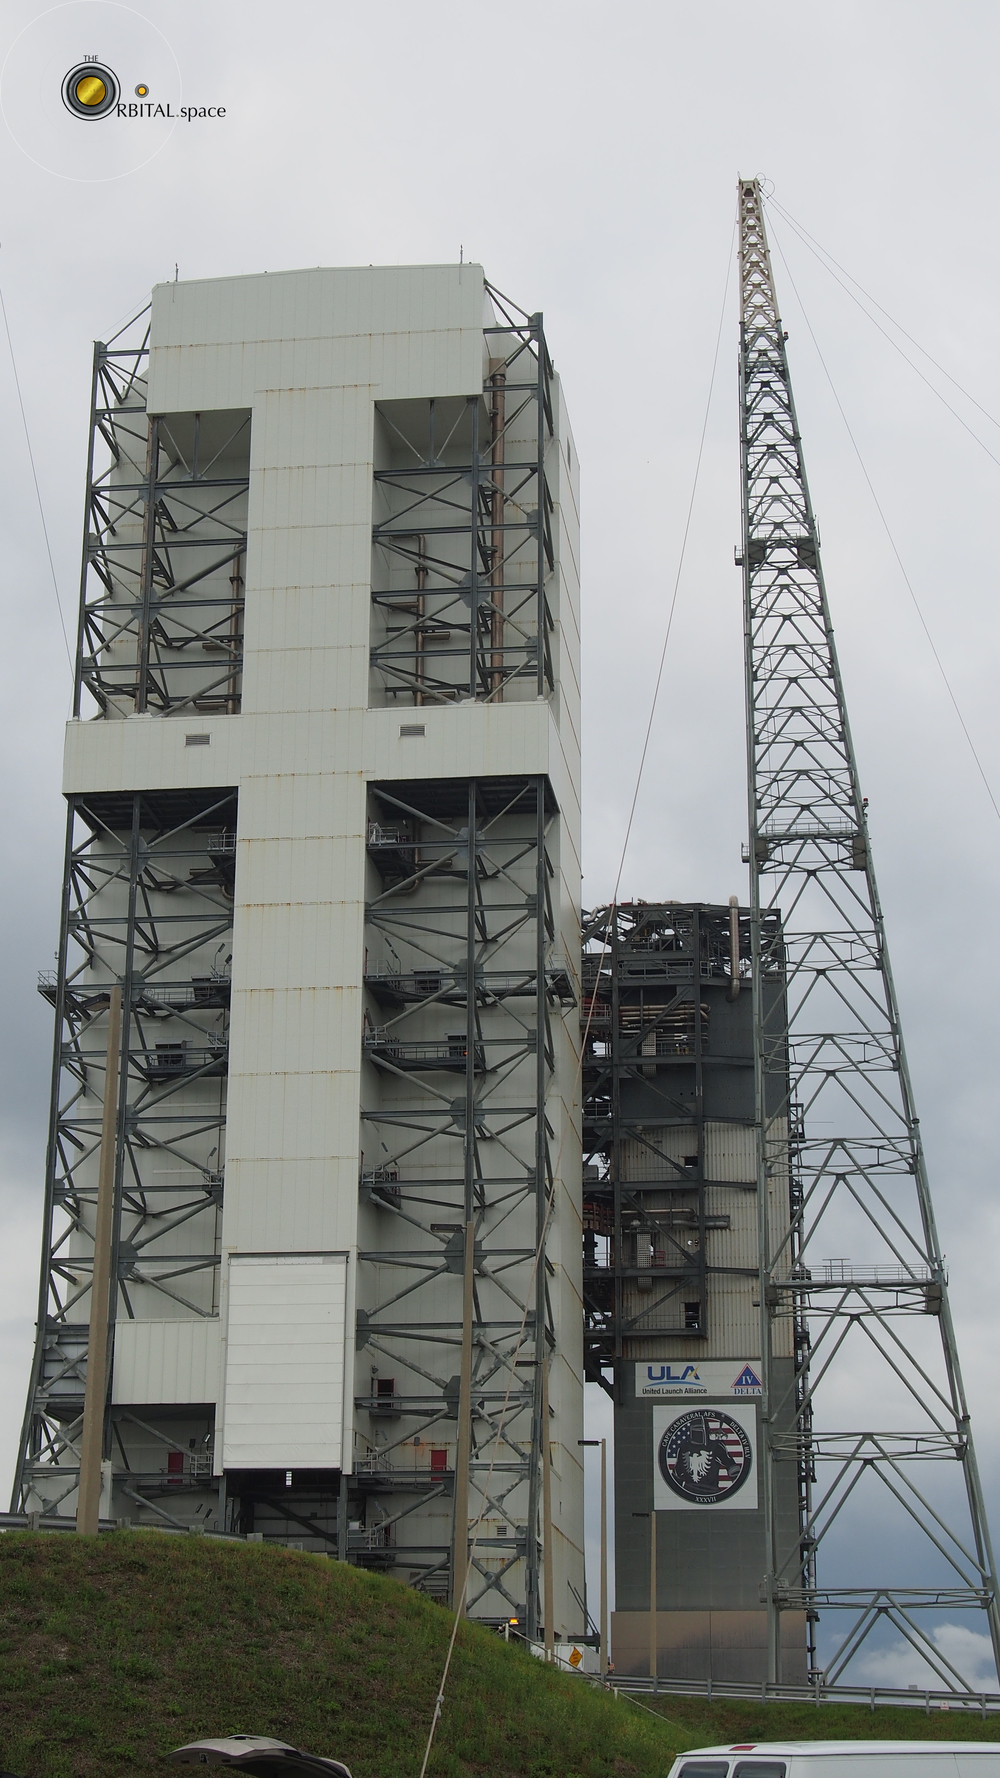 Mobile Service Tower at SLC-37B